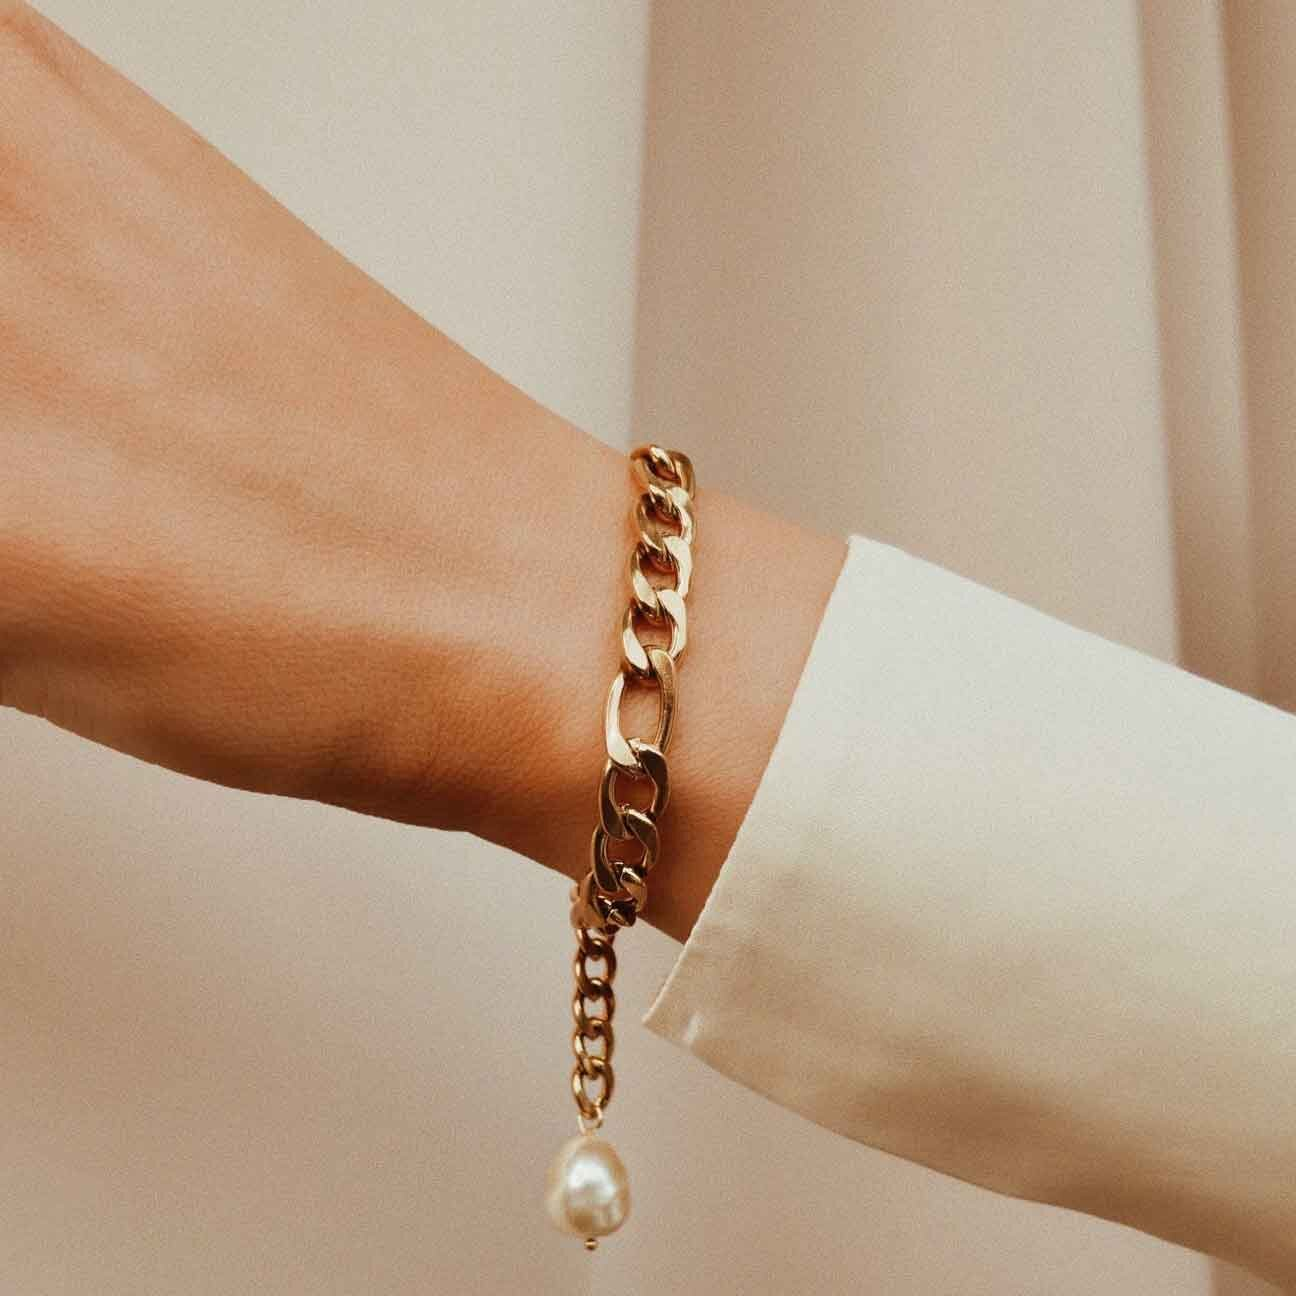 Valentines day gifts her Gold pearl bracelet Nicole Ballardini The Boutique